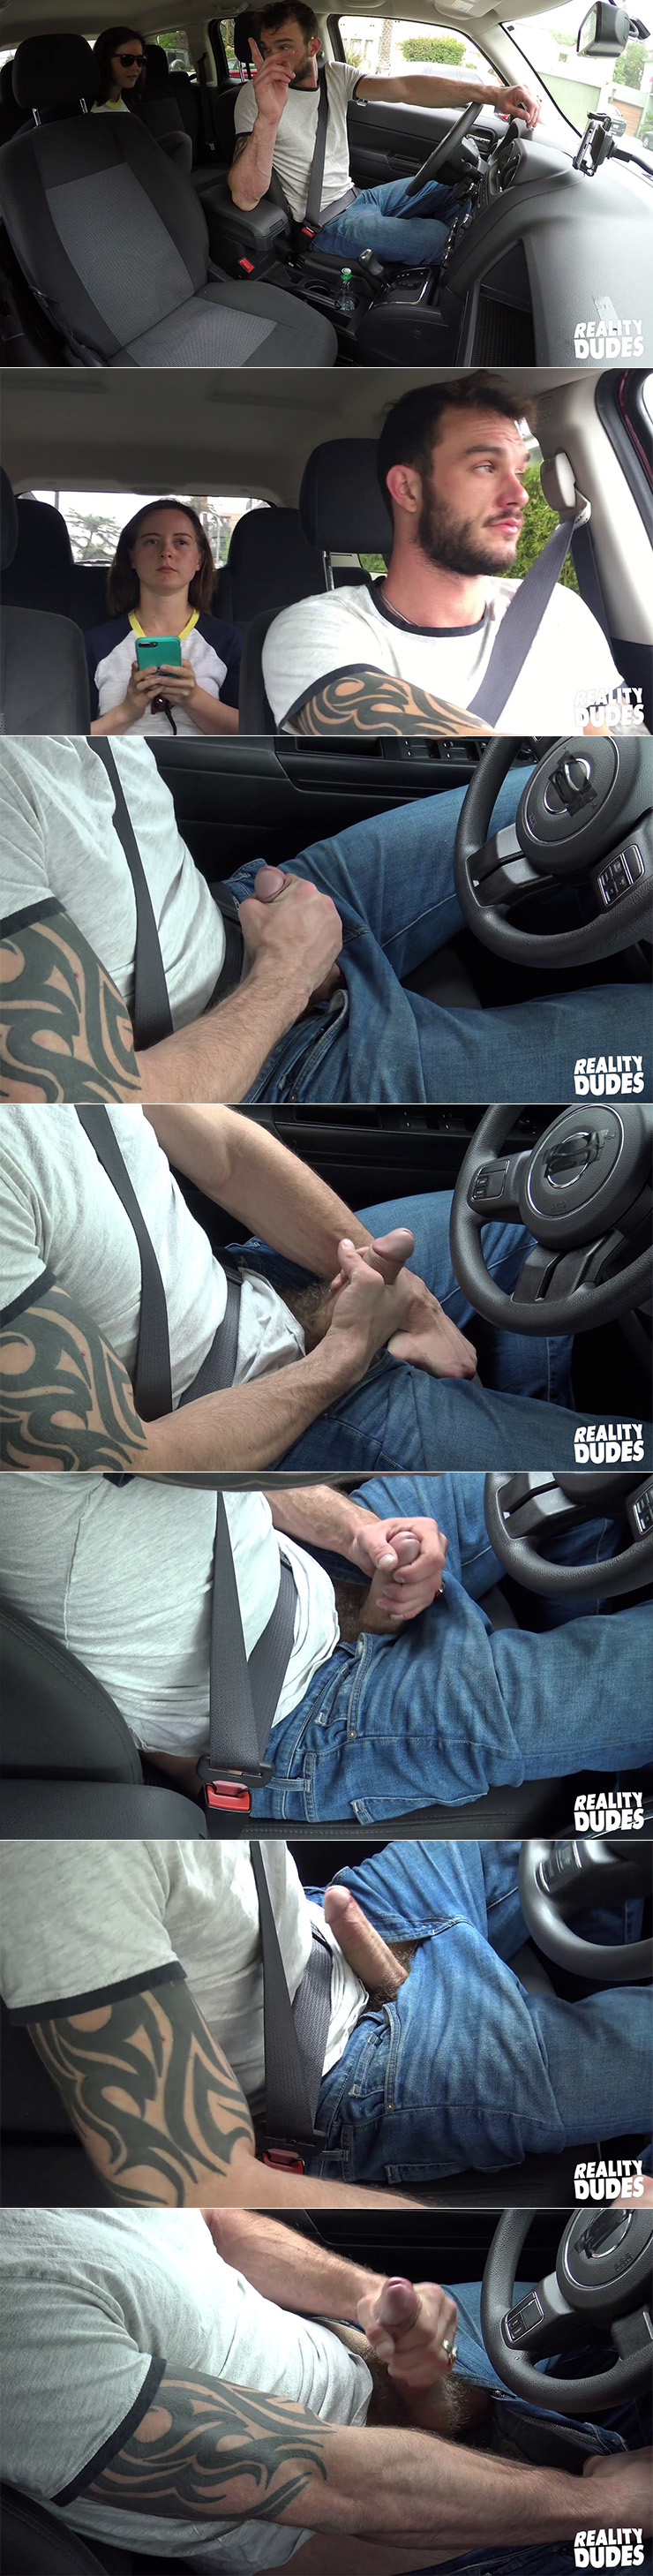 Reality Dudes Dudes In Public Dirty Driver Cliff Jensen Big Cock Solo Masturbation Scene stills